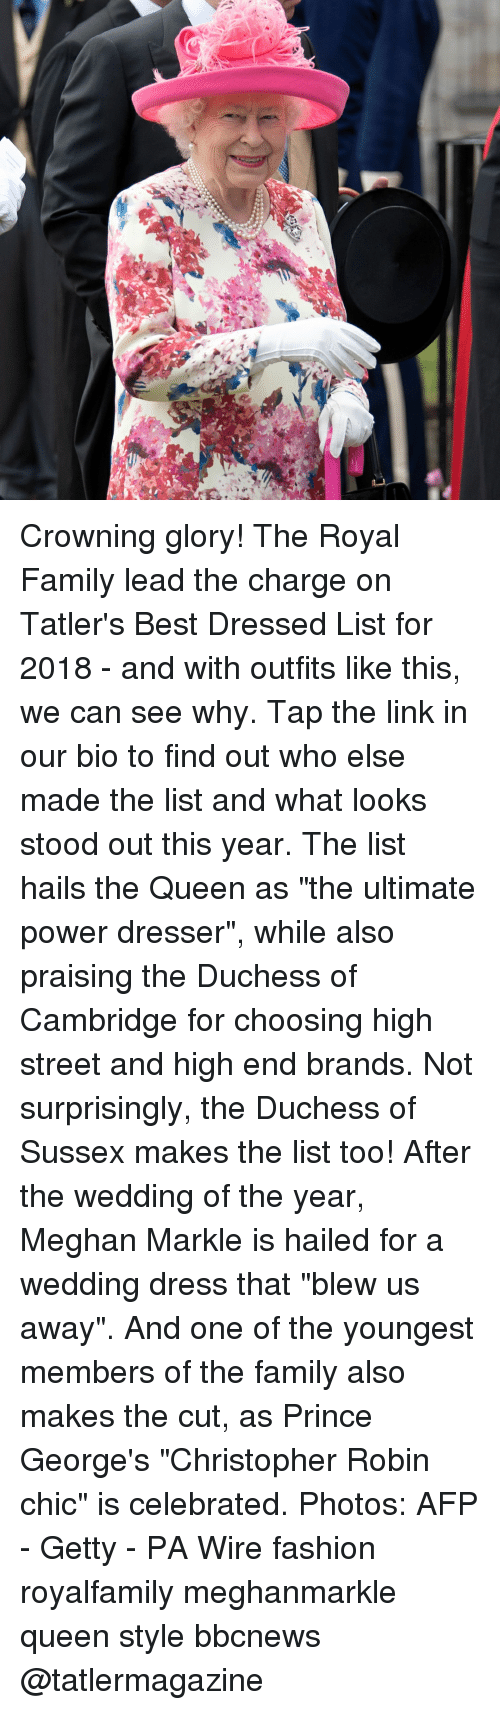 """Royal family: Crowning glory! The Royal Family lead the charge on Tatler's Best Dressed List for 2018 - and with outfits like this, we can see why. Tap the link in our bio to find out who else made the list and what looks stood out this year. The list hails the Queen as """"the ultimate power dresser"""", while also praising the Duchess of Cambridge for choosing high street and high end brands. Not surprisingly, the Duchess of Sussex makes the list too! After the wedding of the year, Meghan Markle is hailed for a wedding dress that """"blew us away"""". And one of the youngest members of the family also makes the cut, as Prince George's """"Christopher Robin chic"""" is celebrated. Photos: AFP - Getty - PA Wire fashion royalfamily meghanmarkle queen style bbcnews @tatlermagazine"""